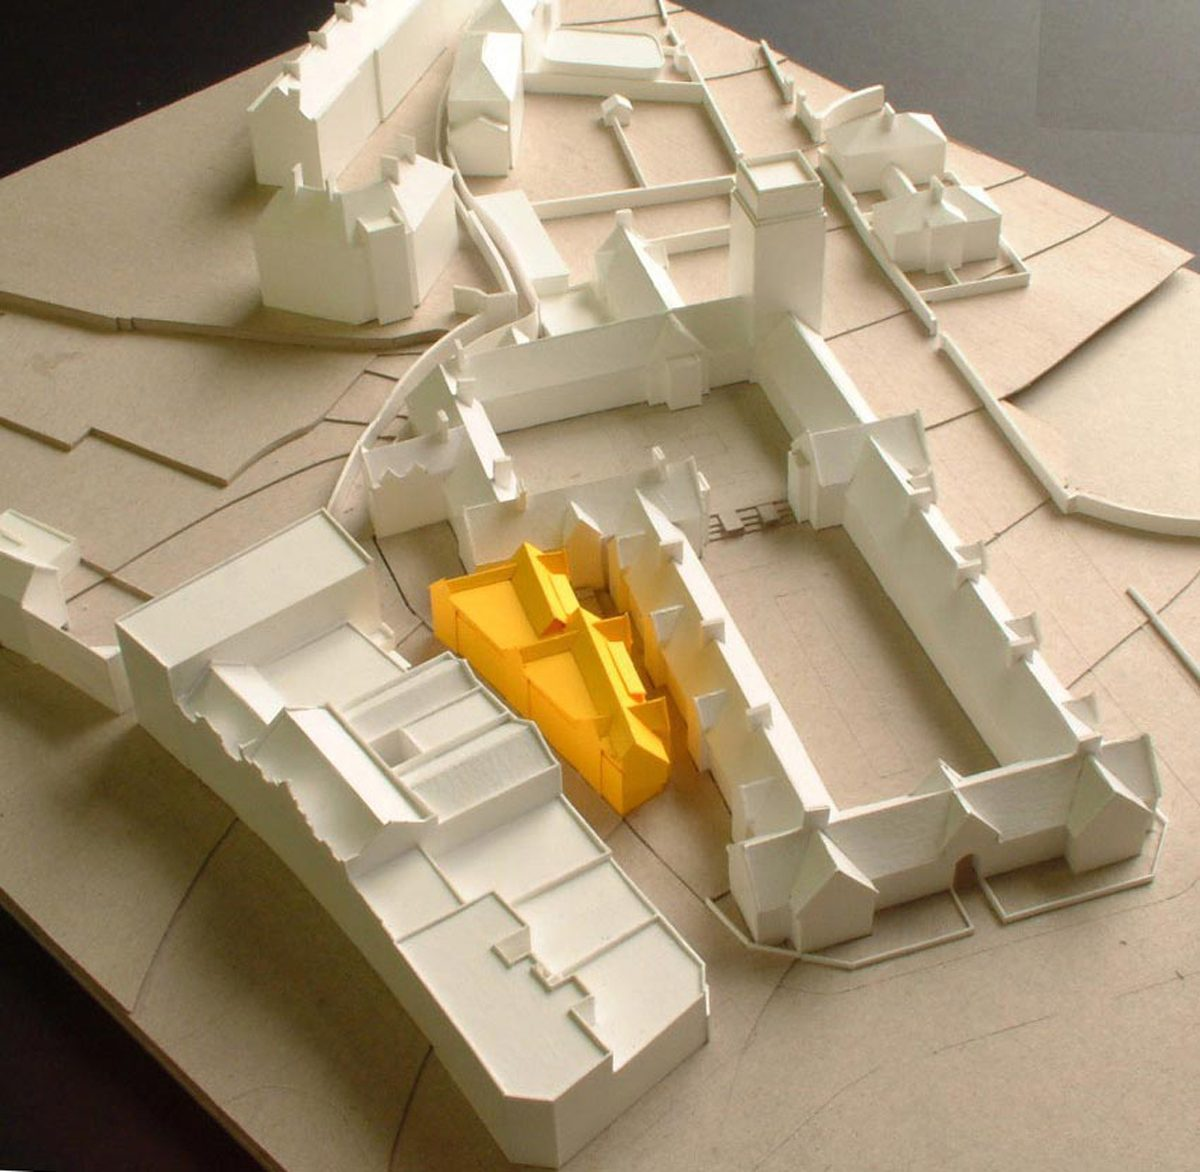 Nuffield College, Oxford - Halls of Residence - Model